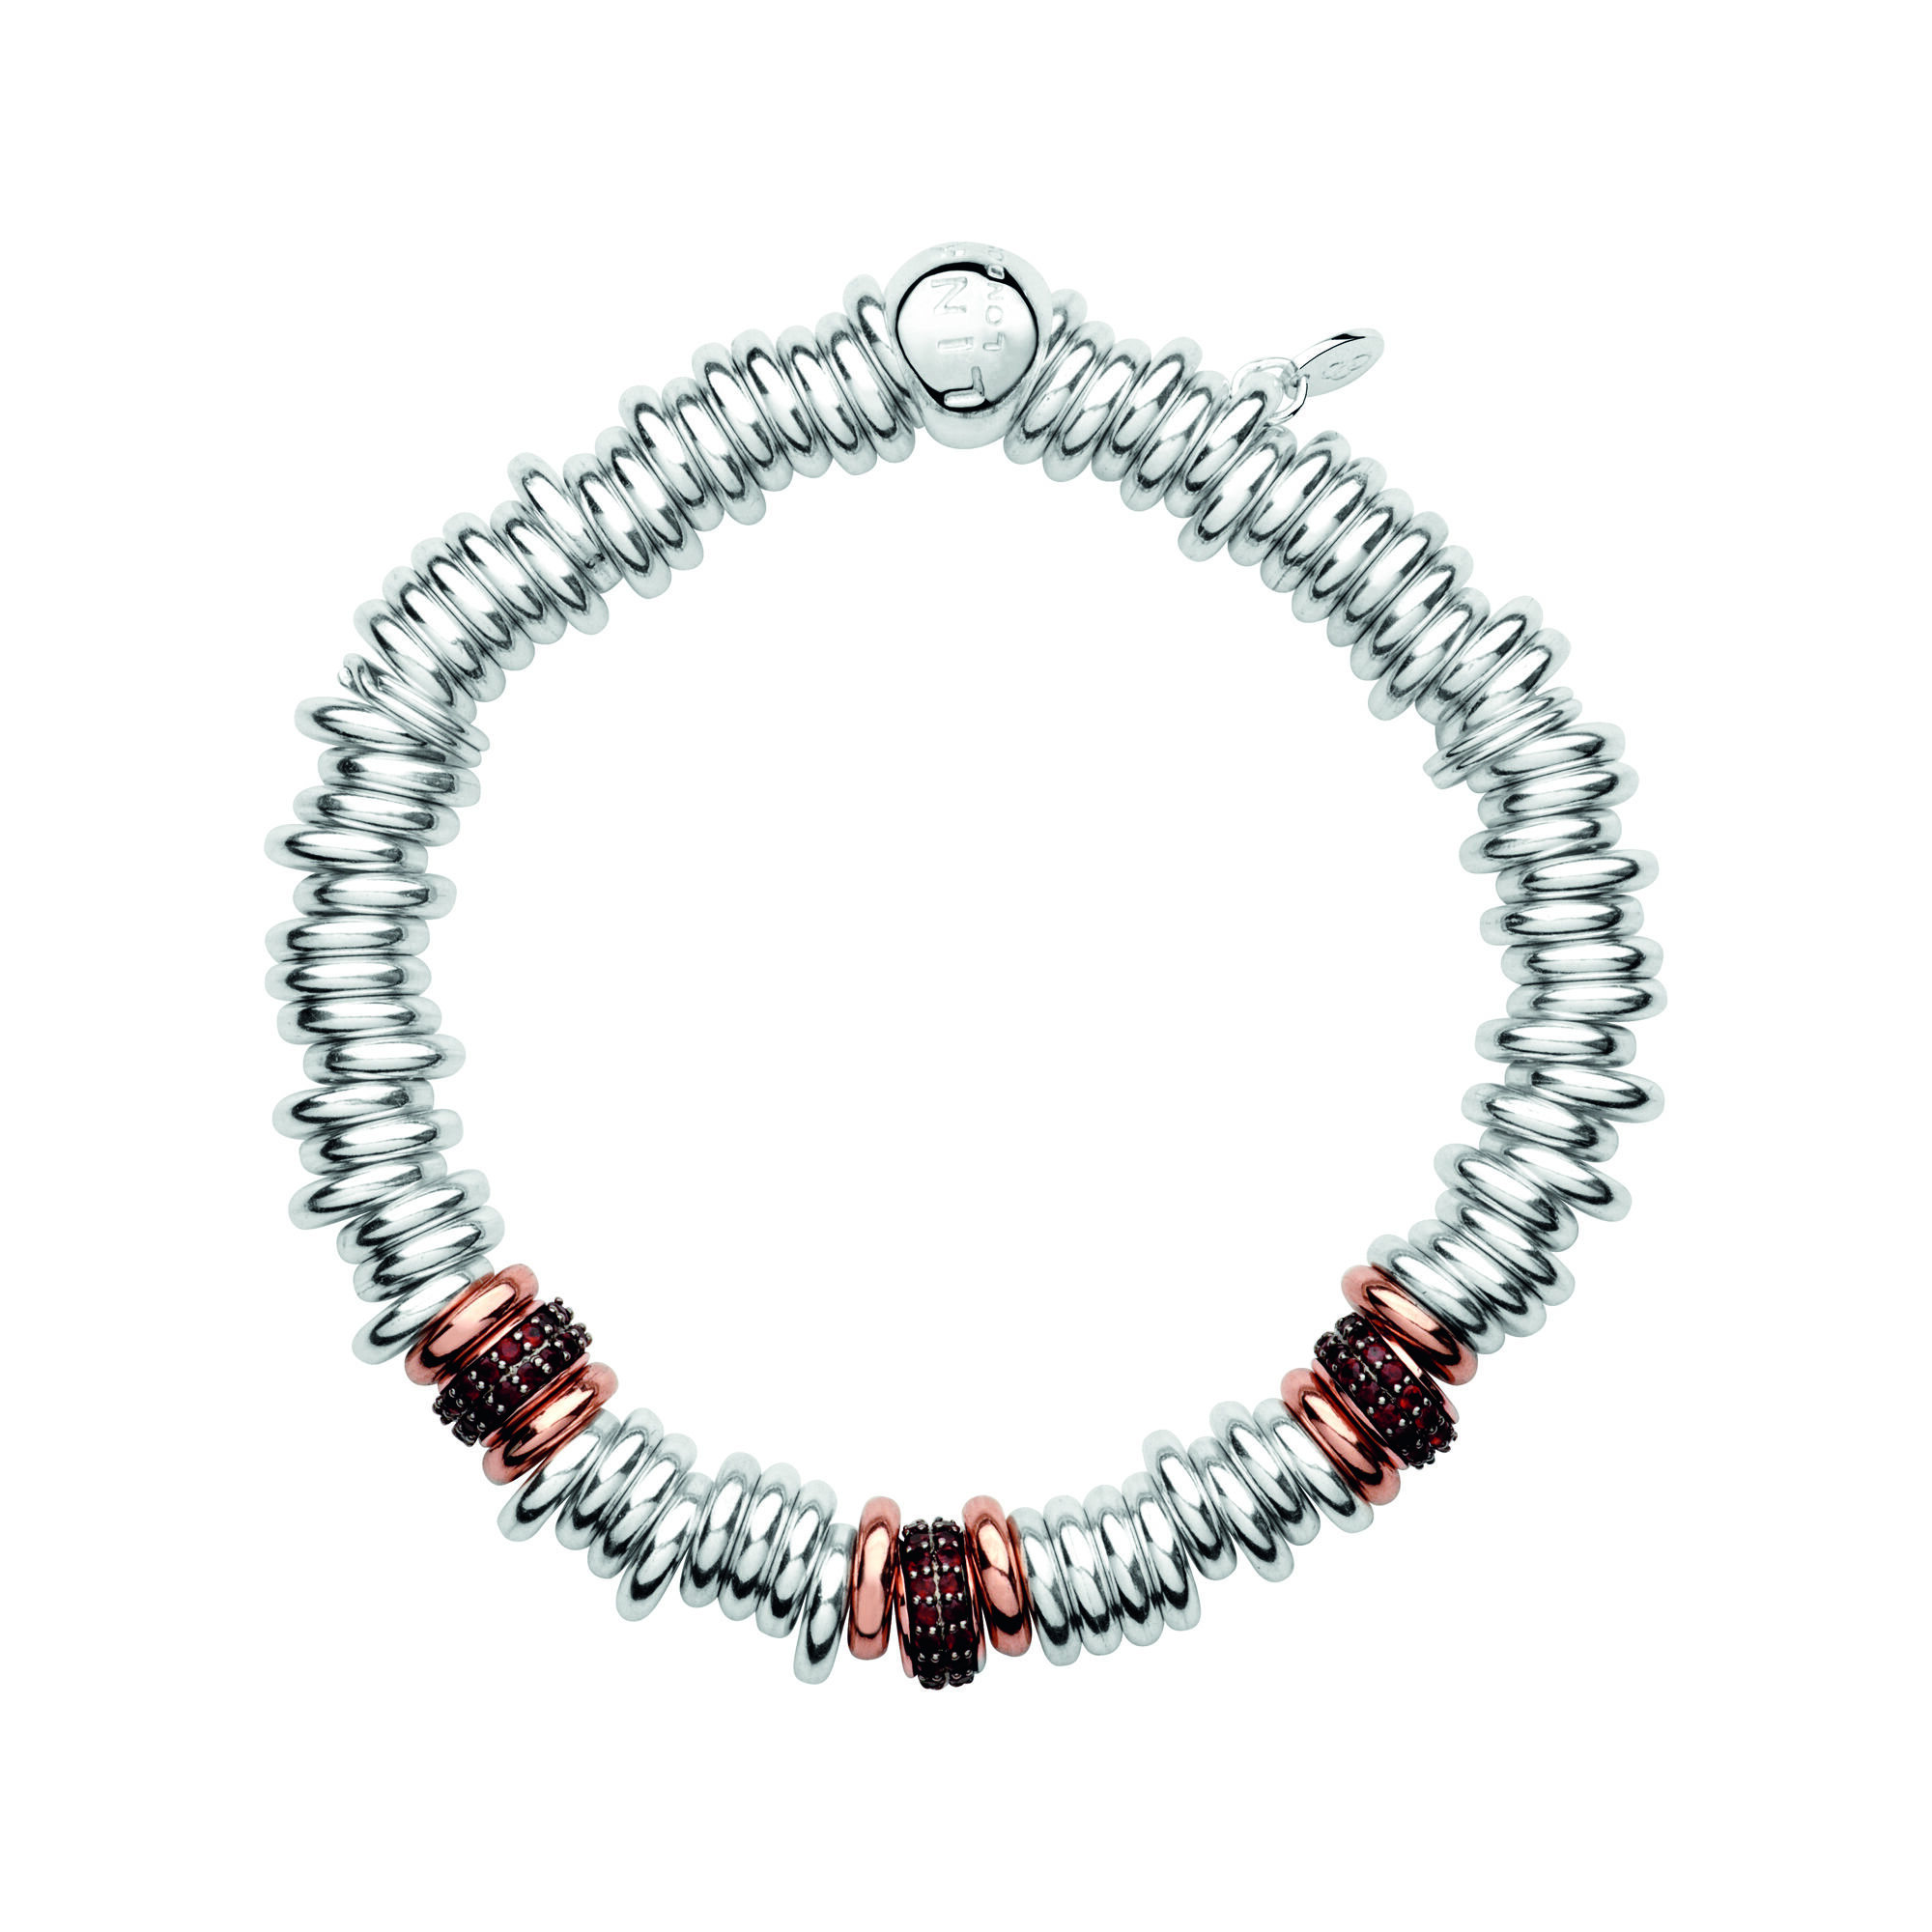 Sweetie 25 Years 18k Rose Gold Garnet Bead Bracelet Hires